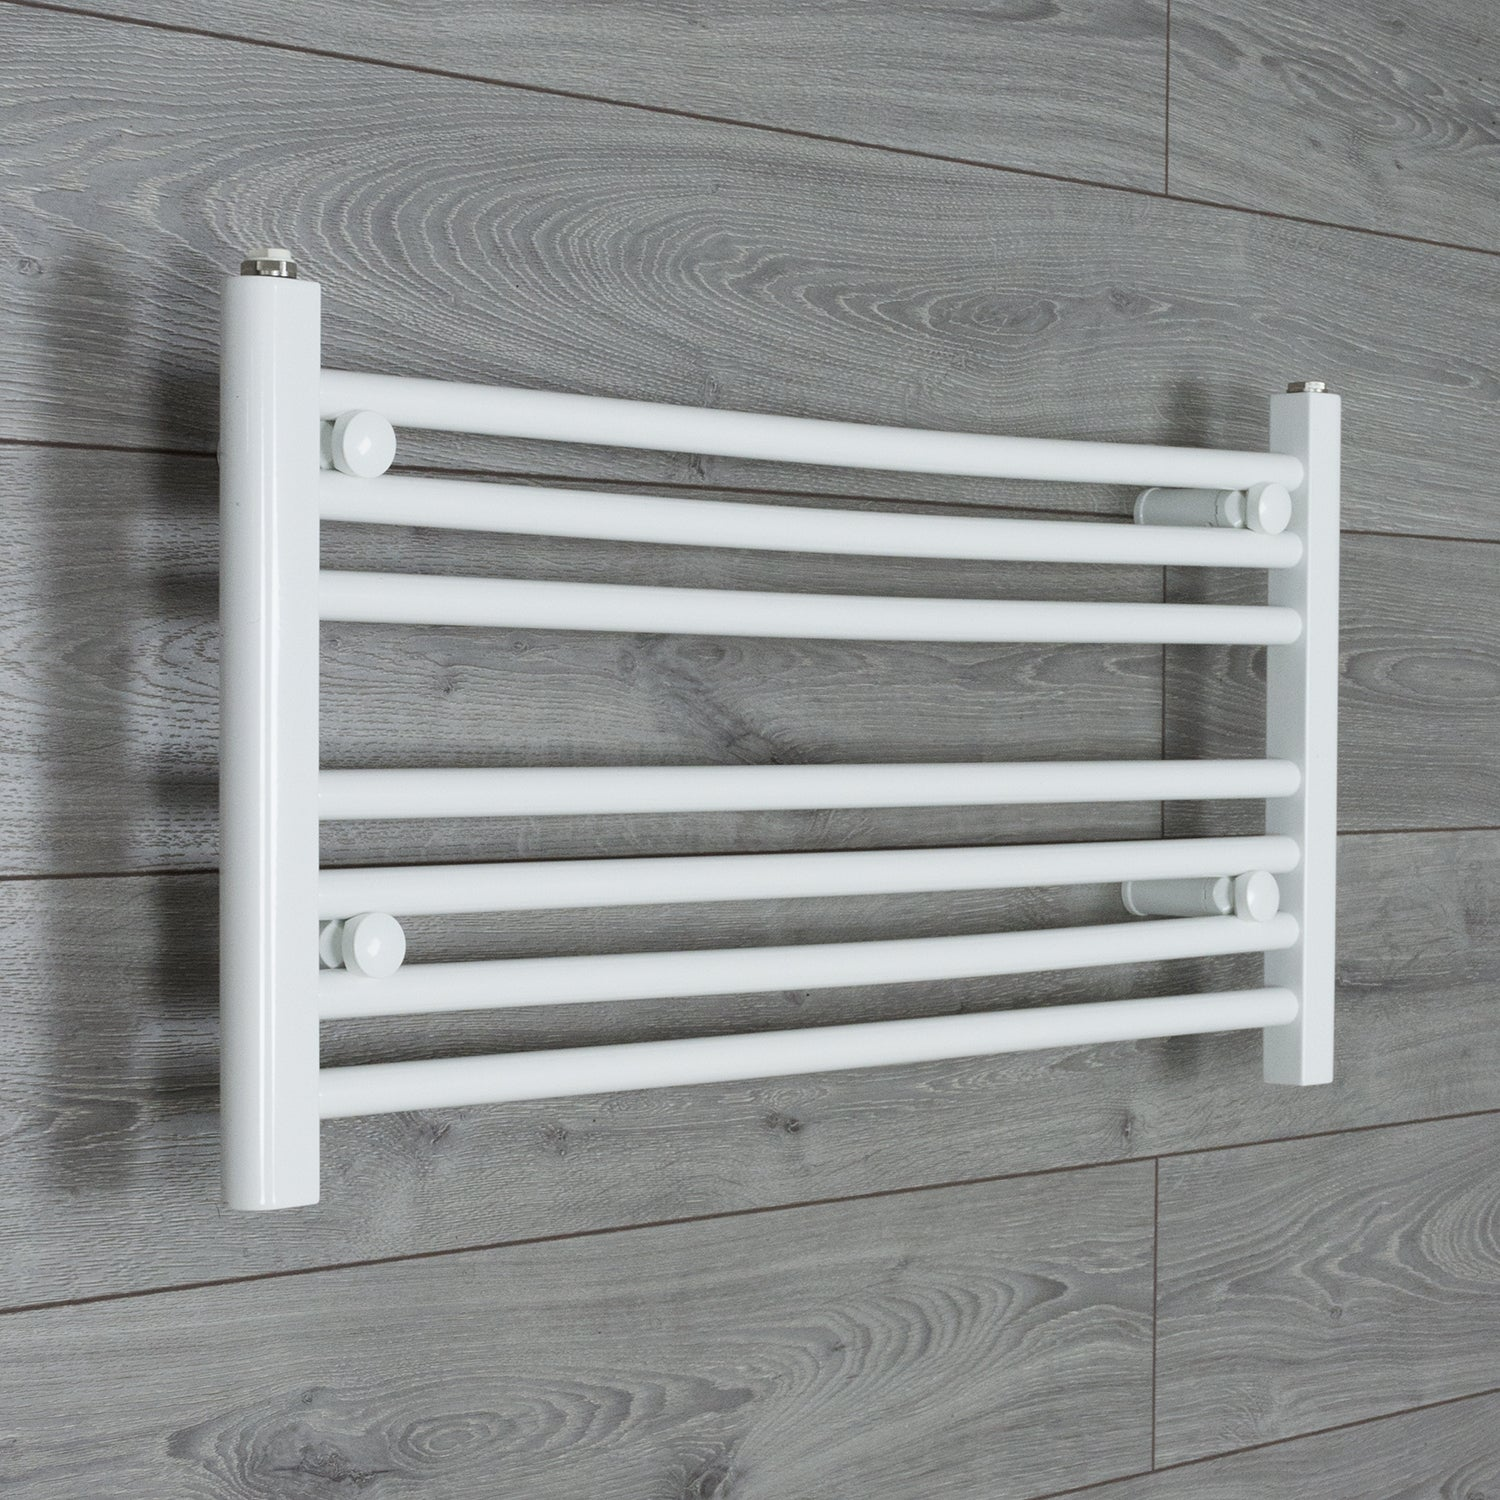 850mm Wide 400mm High Flat White Heated Towel Rail Radiator HTR,Towel Rail Only